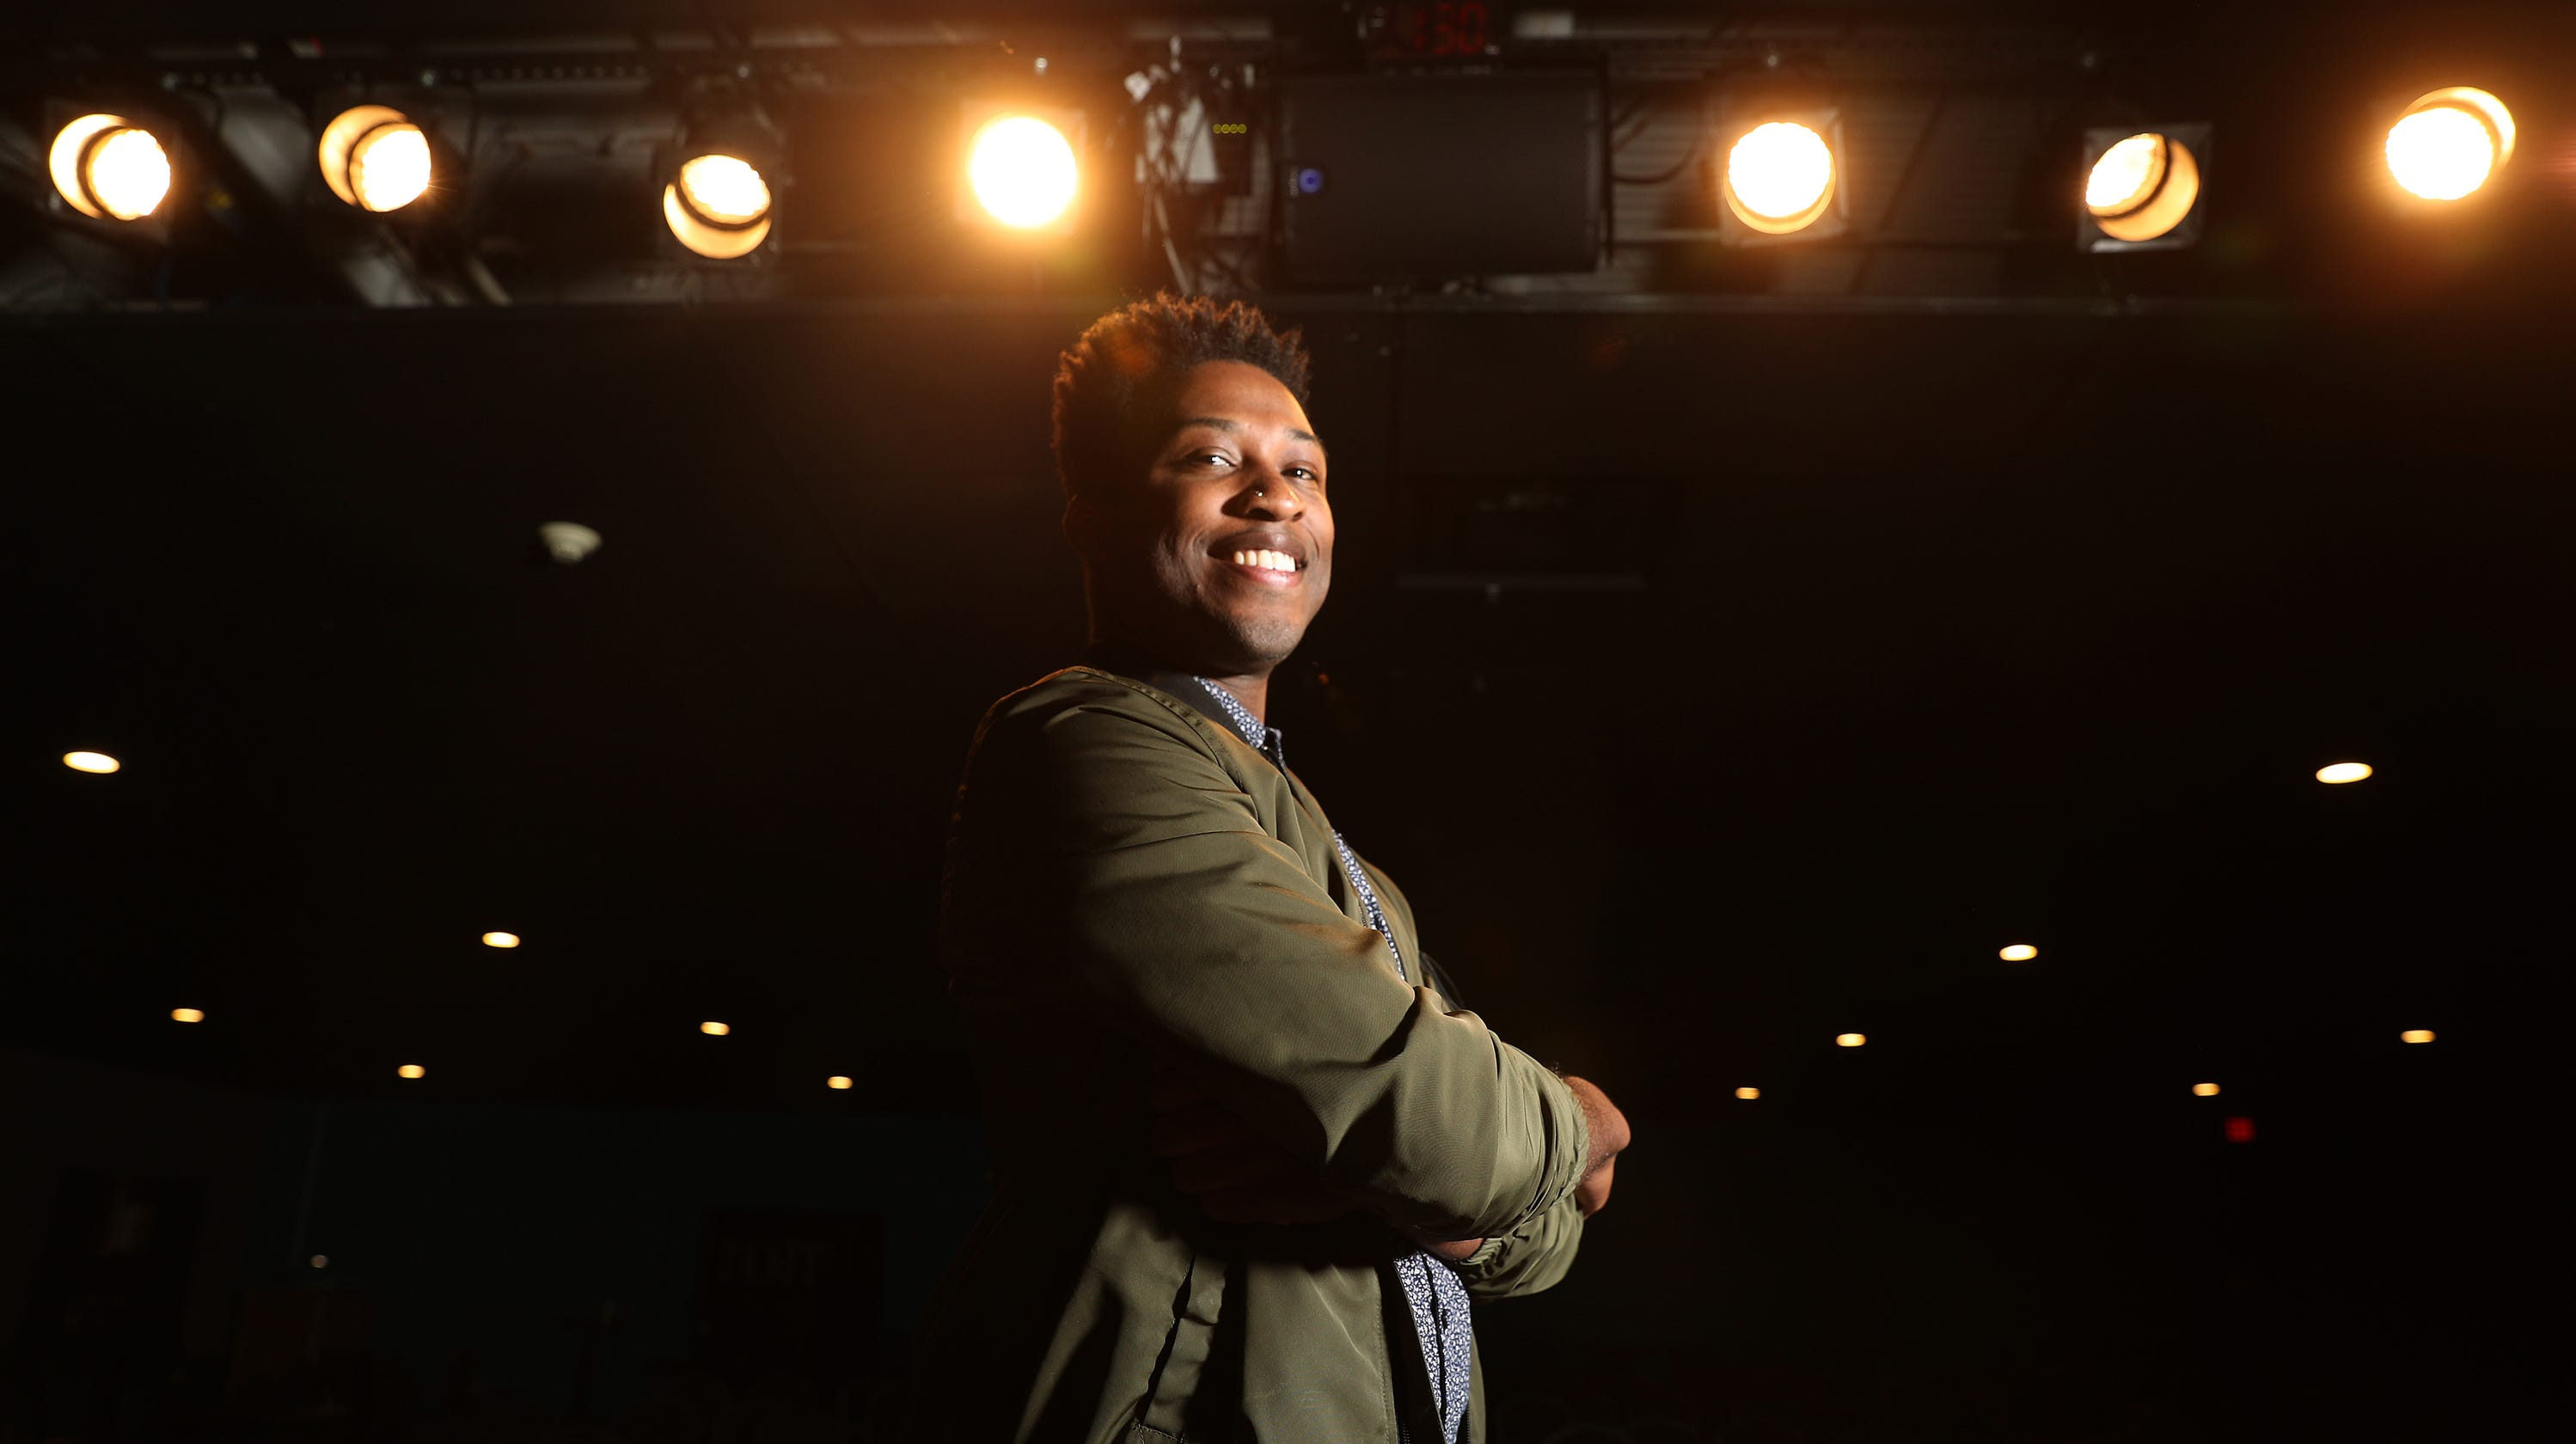 Comedian Malcolm Whitfield talks about race and wins over audiences